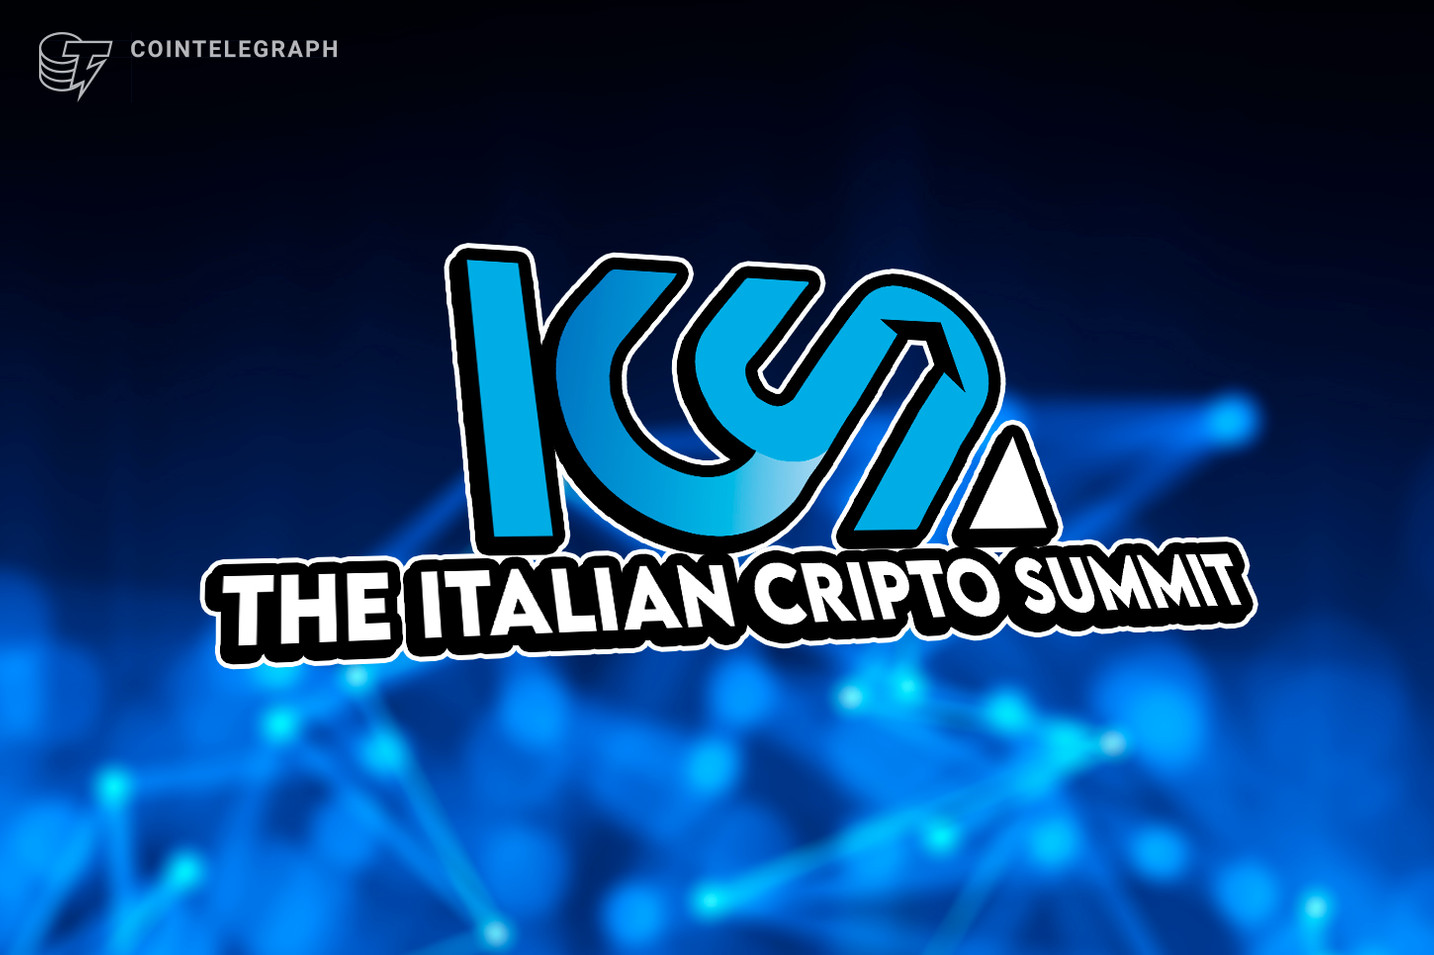 Experts gathered for children with leukemia at The Italian Cripto Summit